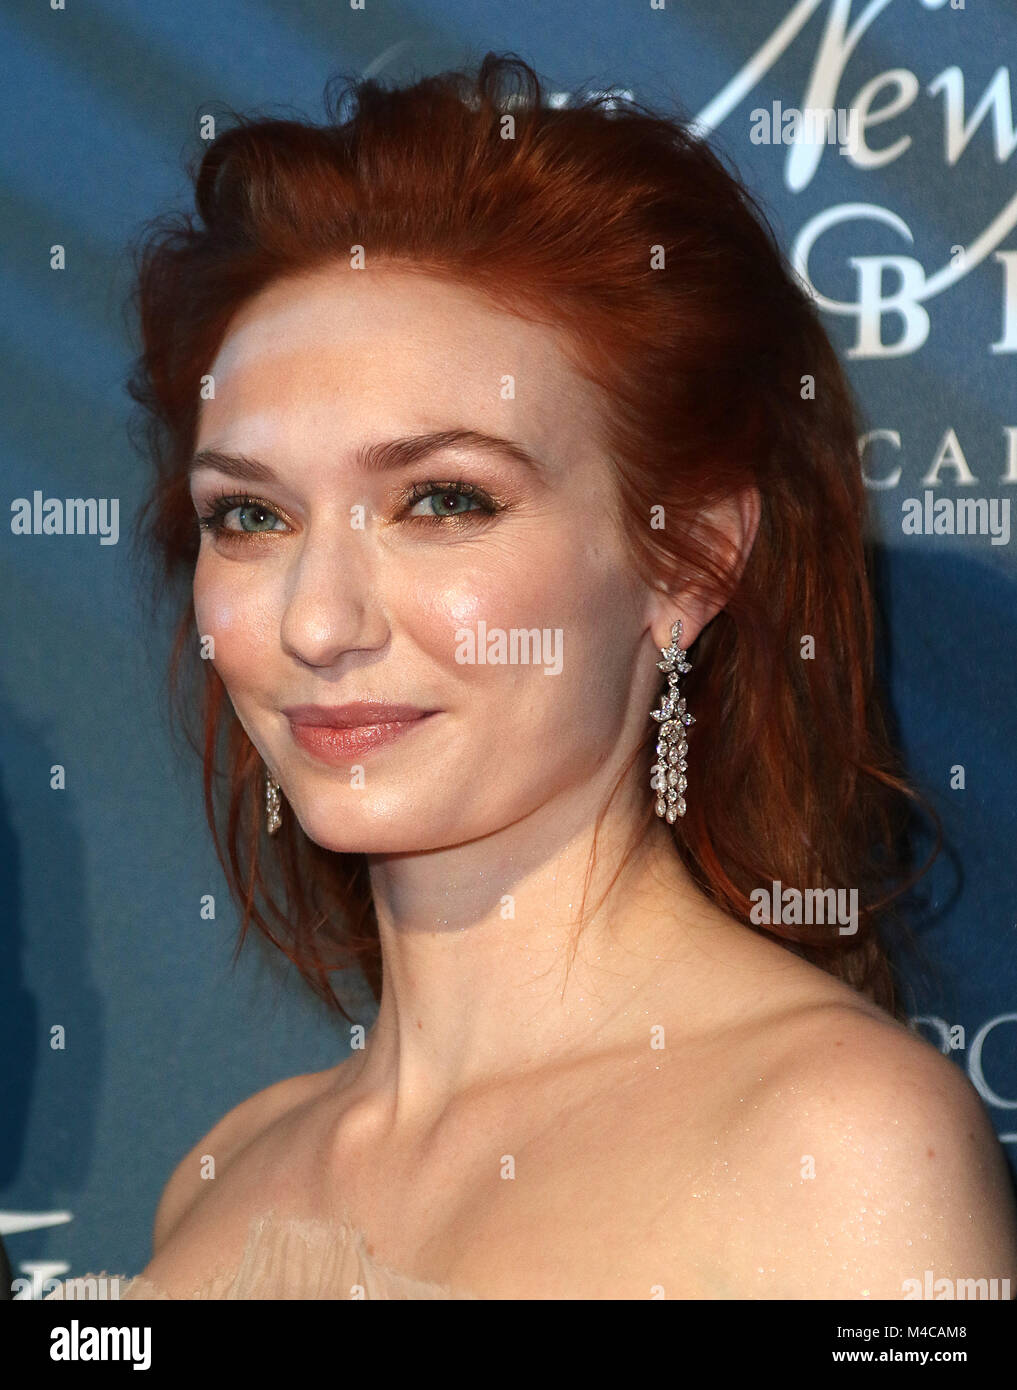 London, UK. 15th February, 2018. Eleanor Tomlinson, Newport Beach Film Festival - Annual UK Honours Event, The Rosewood Stock Photo